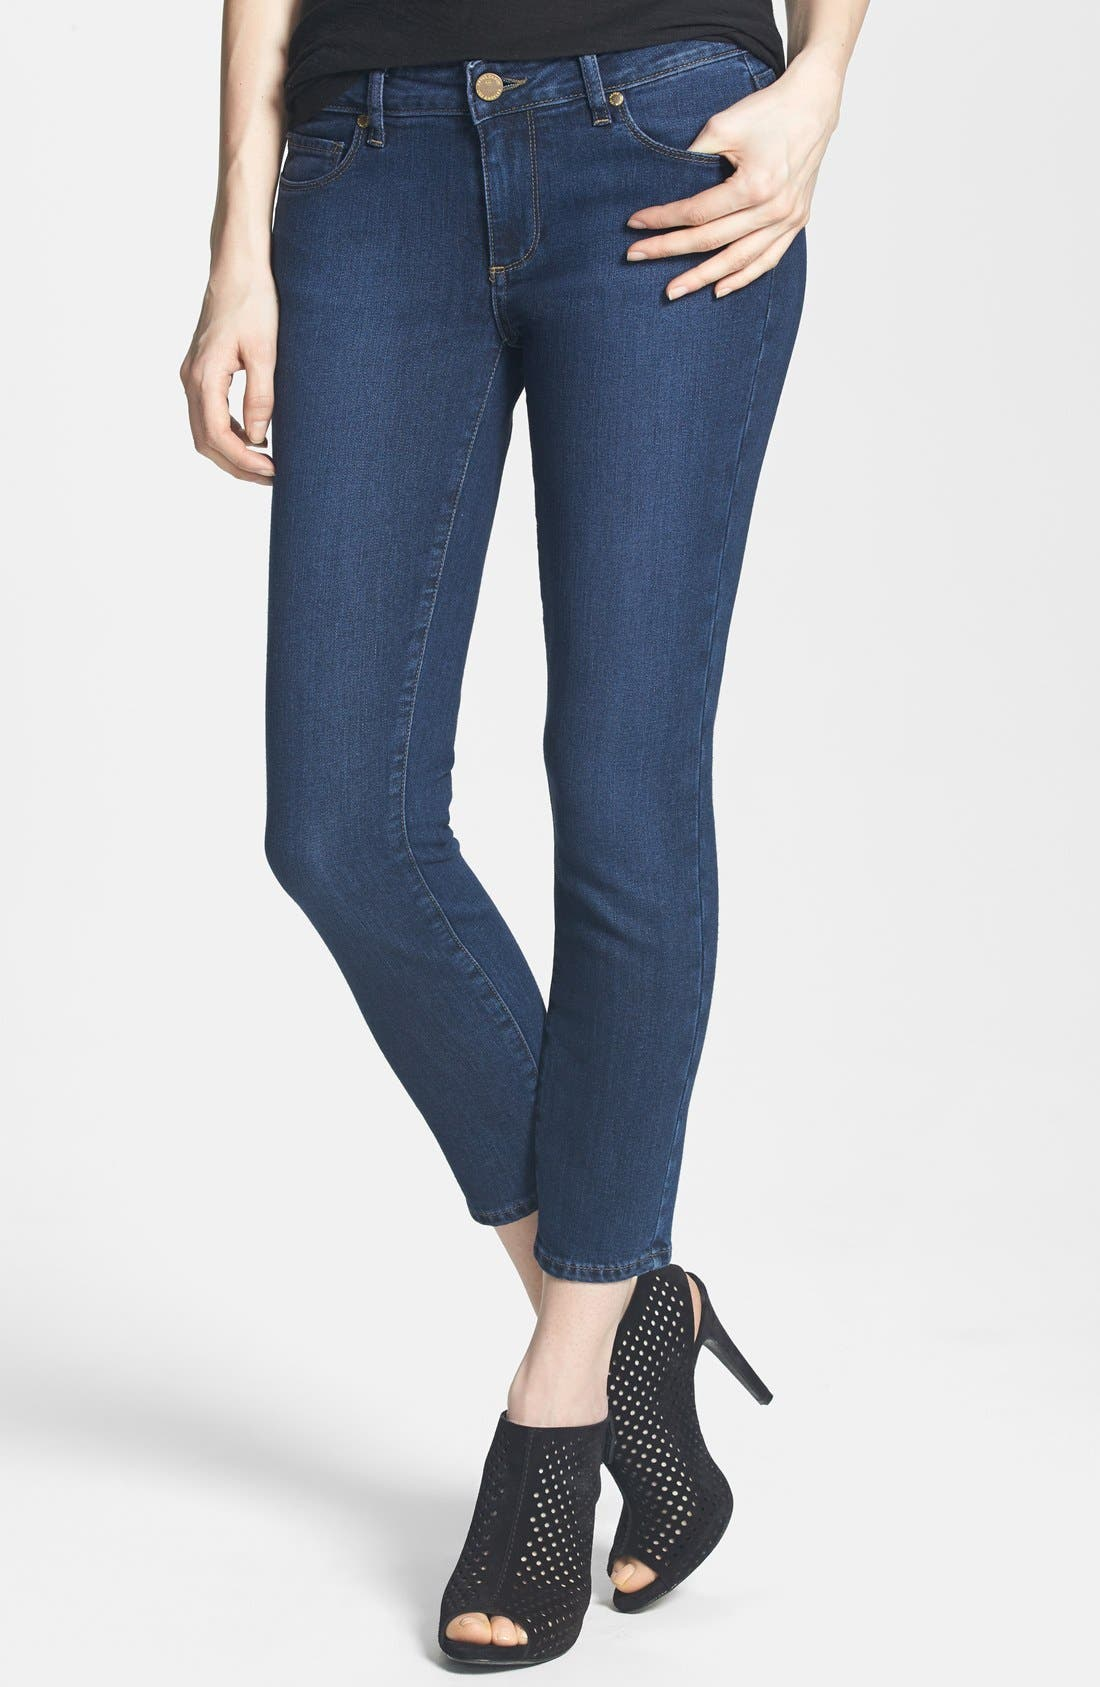 Alternate Image 1 Selected - Paige Denim 'Kylie' Crop Skinny Jeans (Claire)